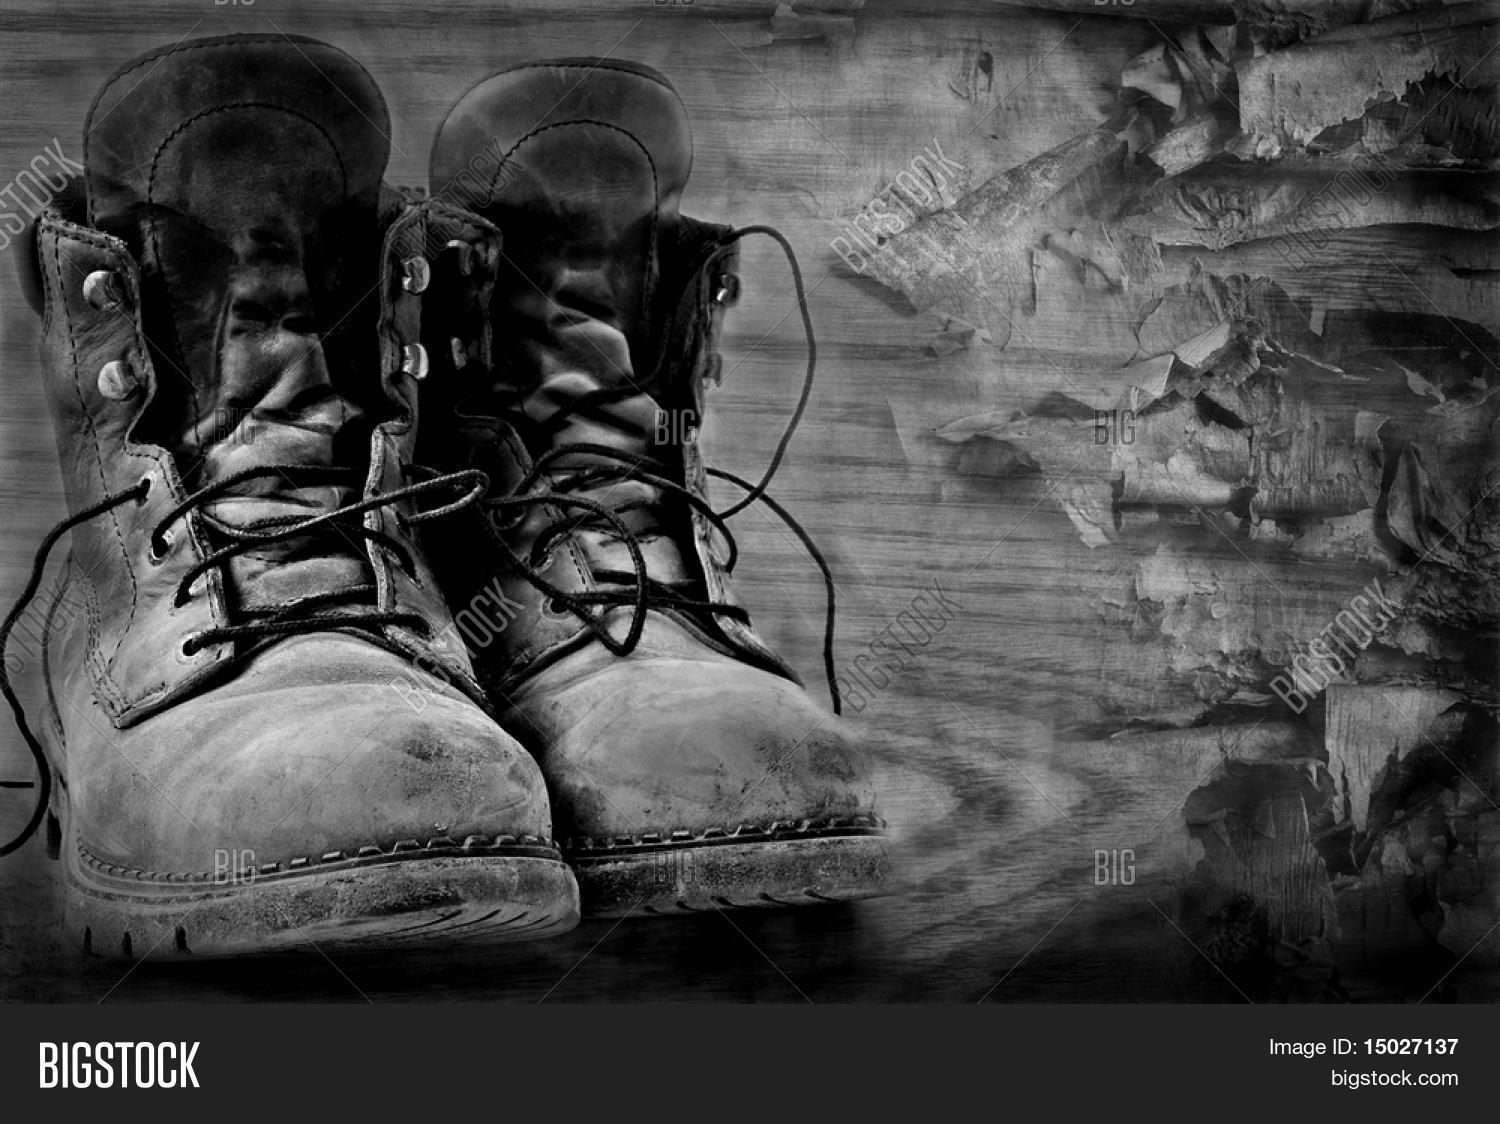 Artistic black and white image of rugged boots on wood textured background